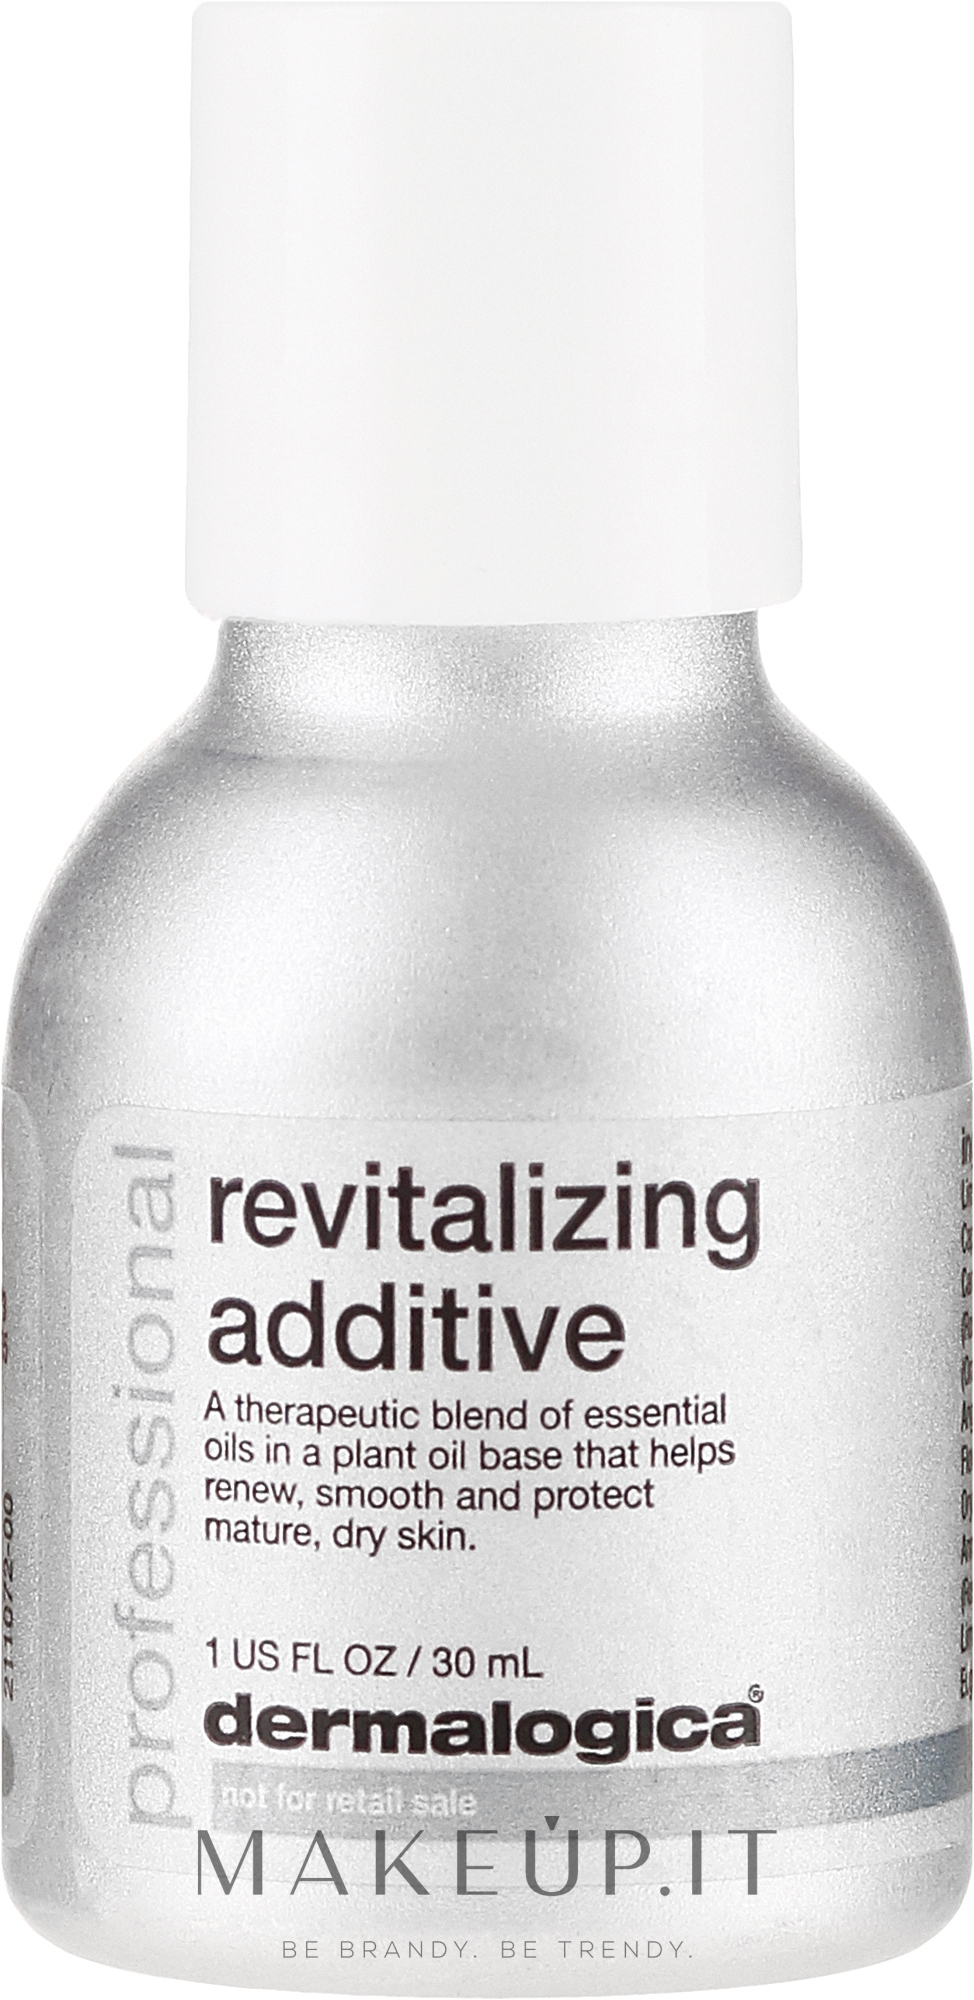 Siero viso rivitalizzante - Dermalogica Revitalizing Additive — foto 30 ml